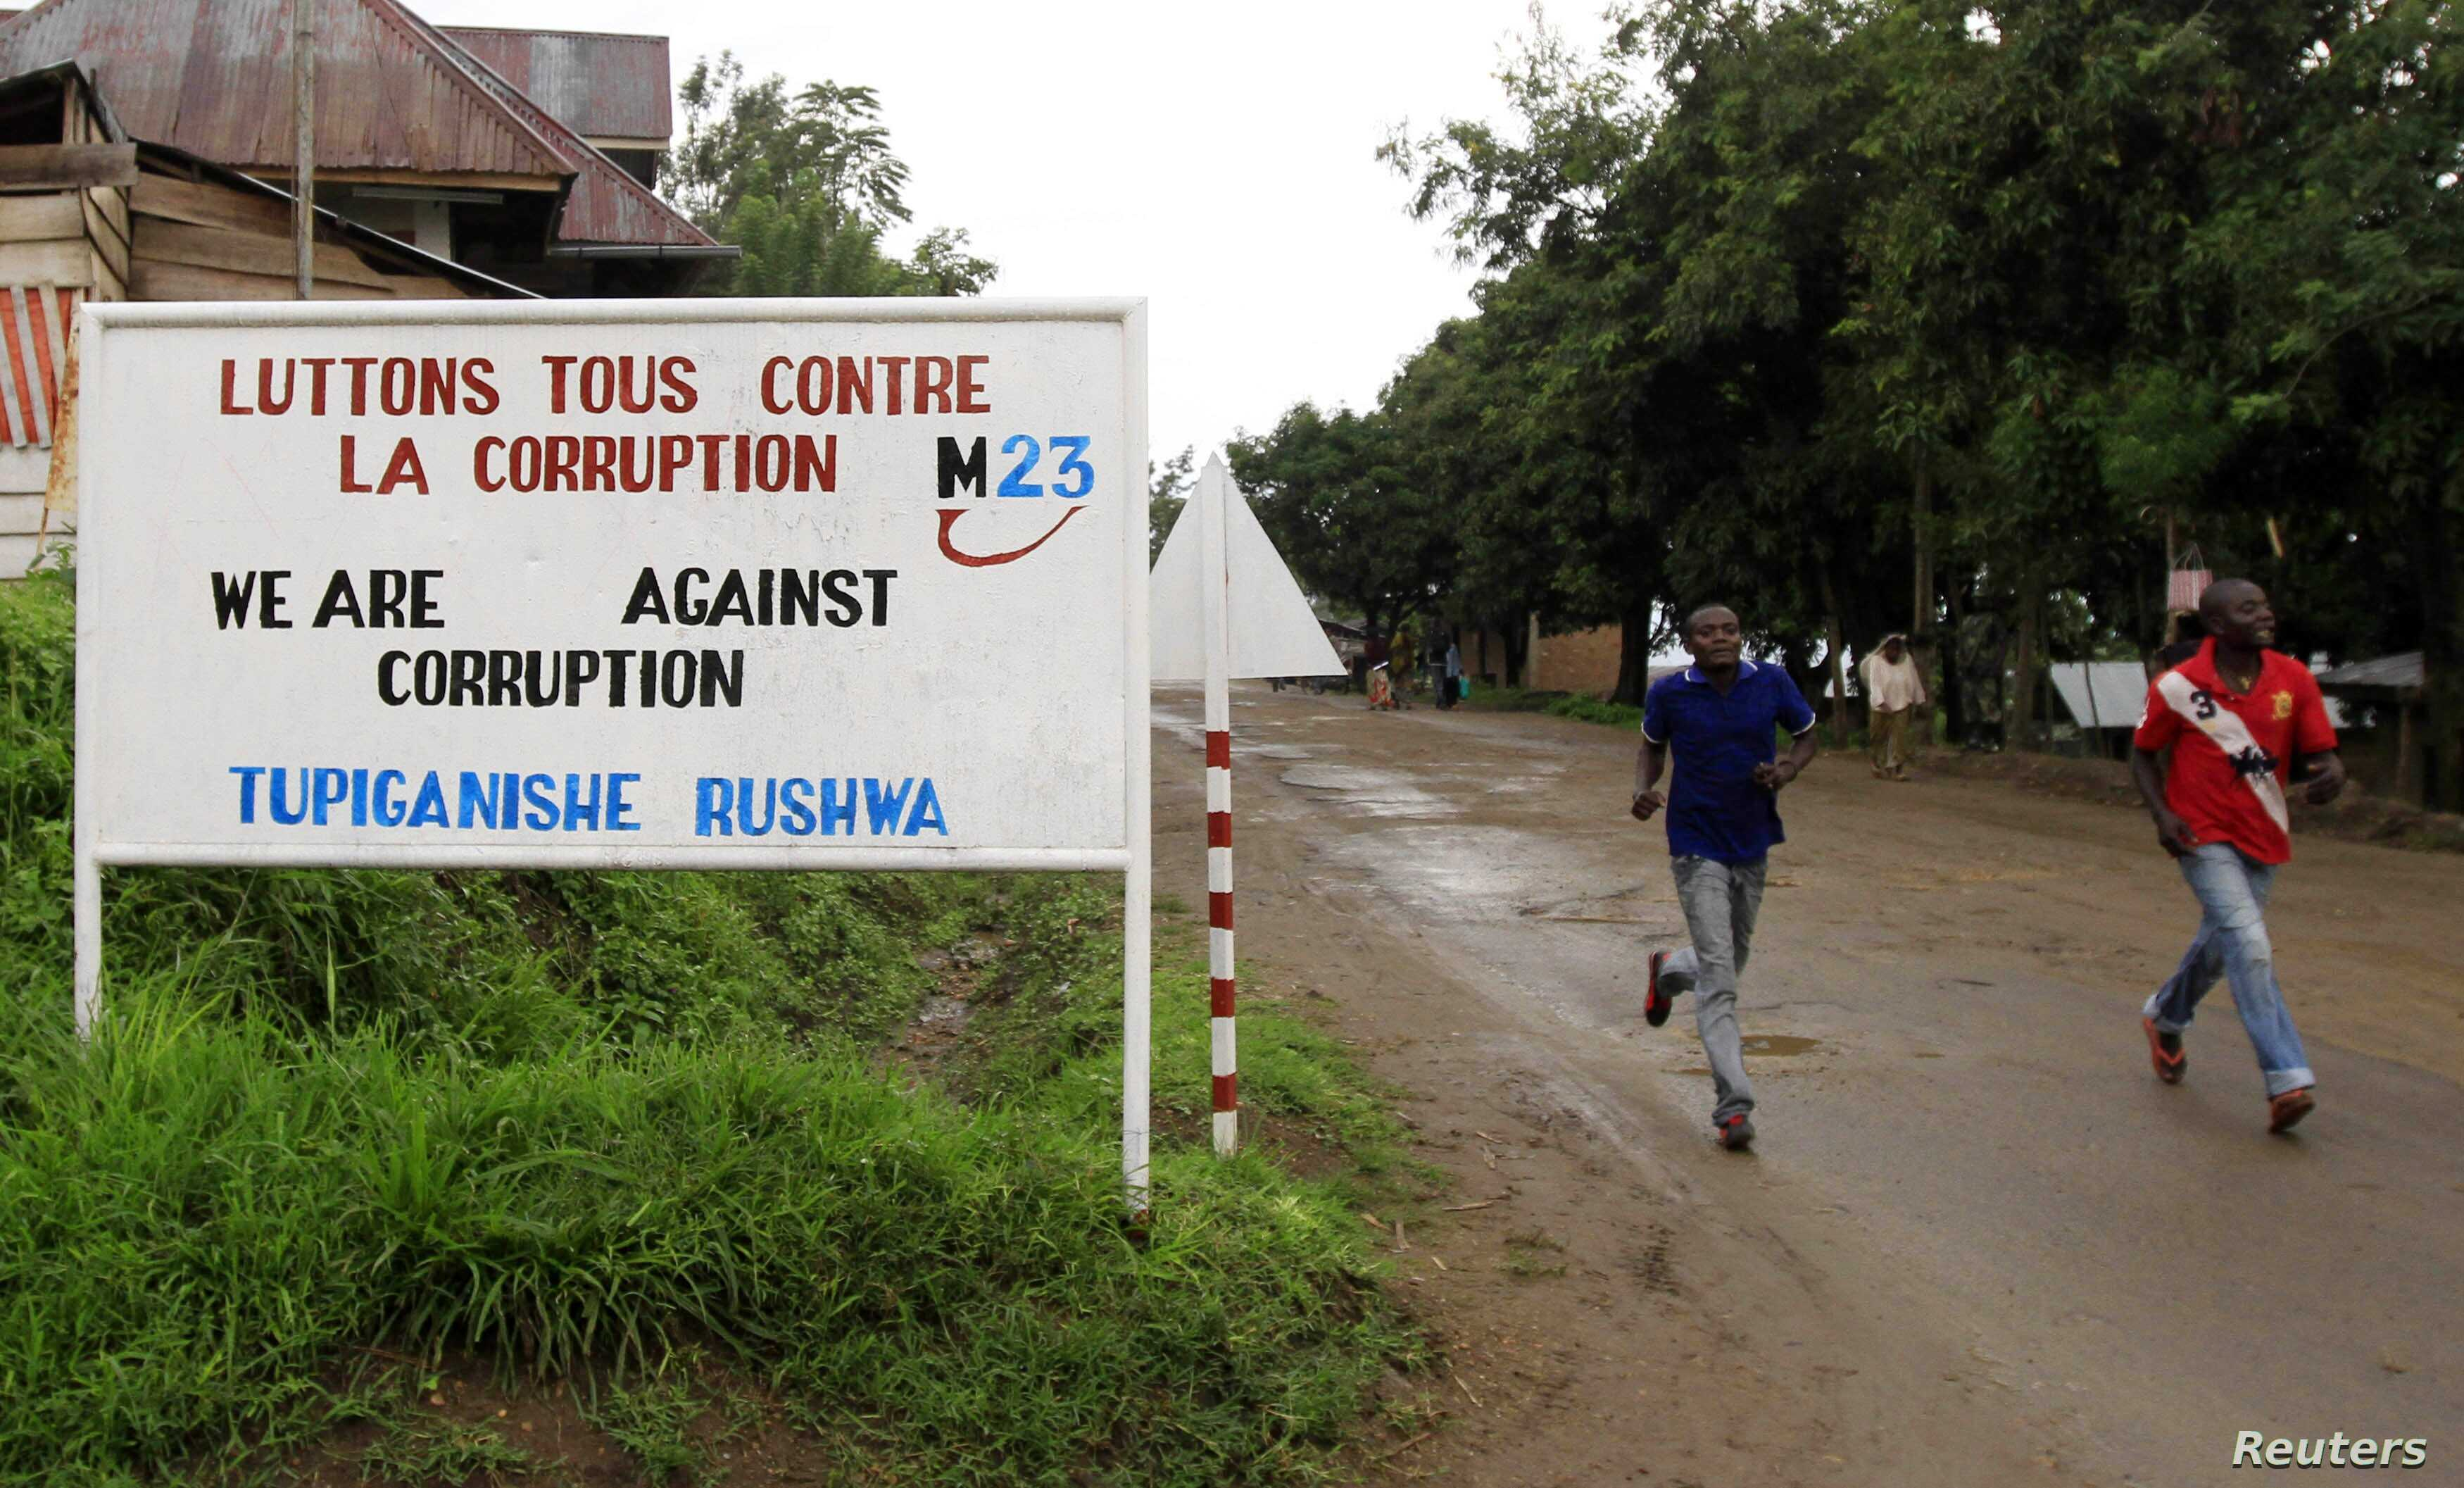 People jog past a sign, with a message by the M23 movement in their campaign against rampant corruption in the Democratic Republic of Congo, in an area under controlled of the Congolese Revolutionary Army (CRA) in Rutshuru town, November 3, 2012.